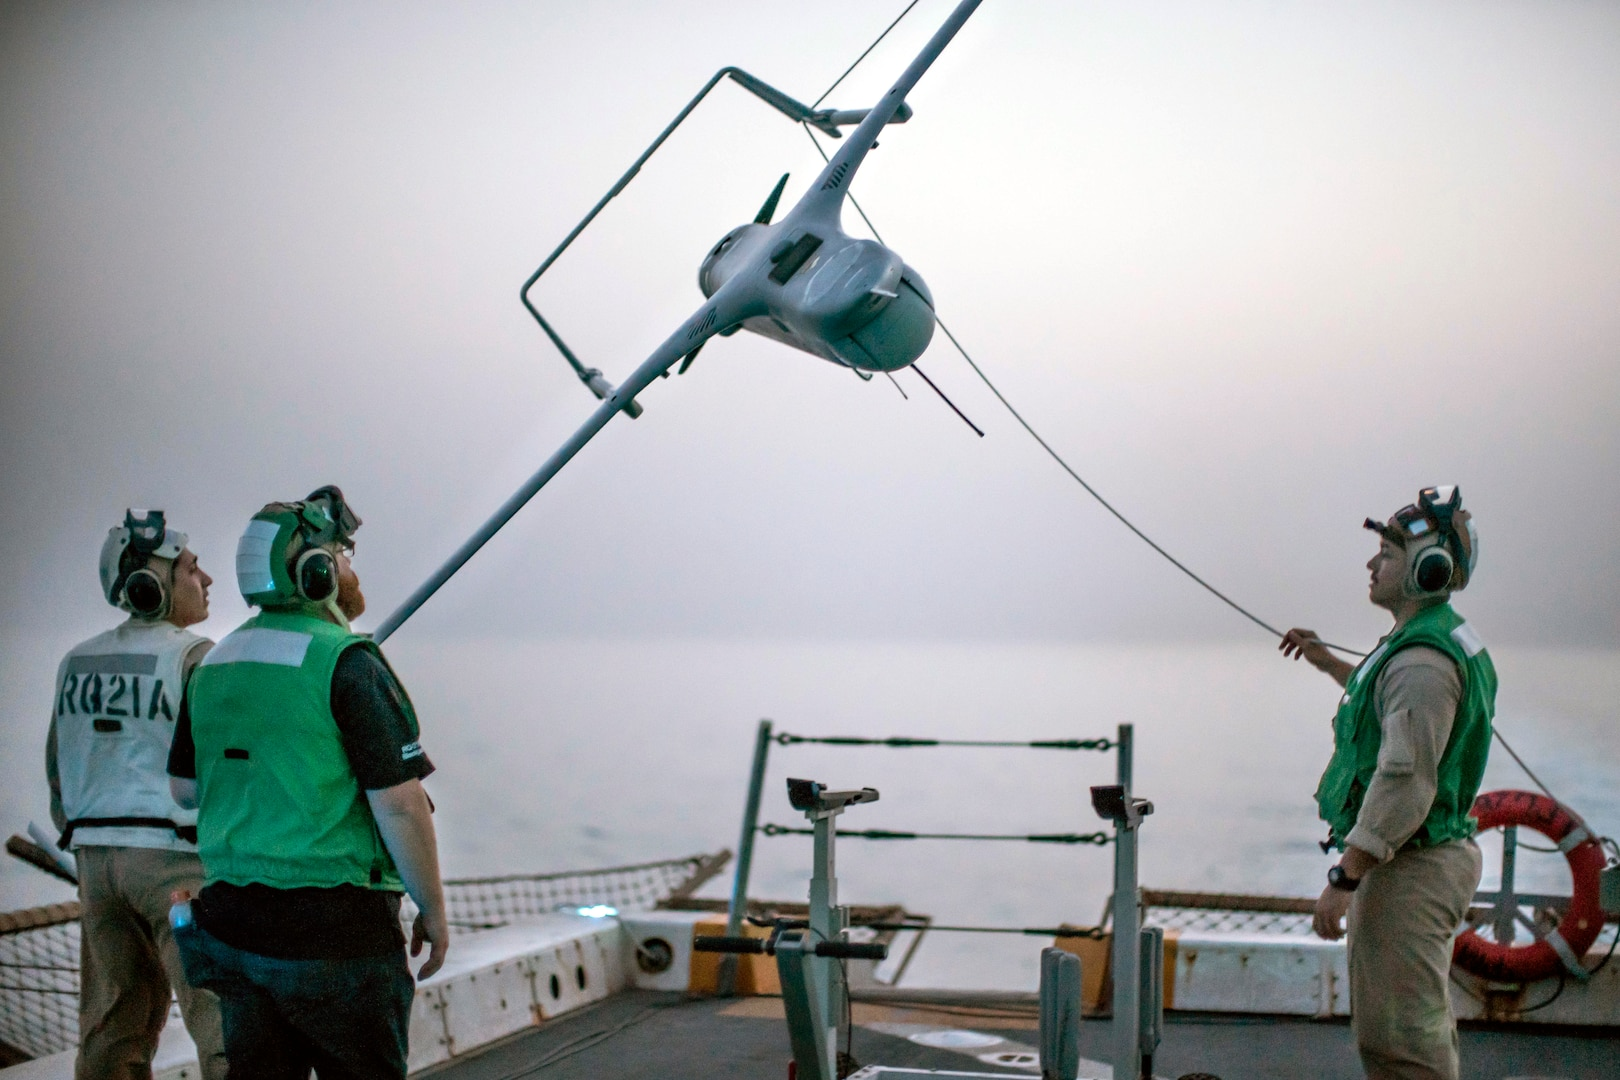 Marines lower RQ-21A Blackjack unmanned aerial system from recovery system aboard USS John P. Murtha, Gulf of Aden, July 2019 (U.S. Marine Corps/Adam Dublinske)